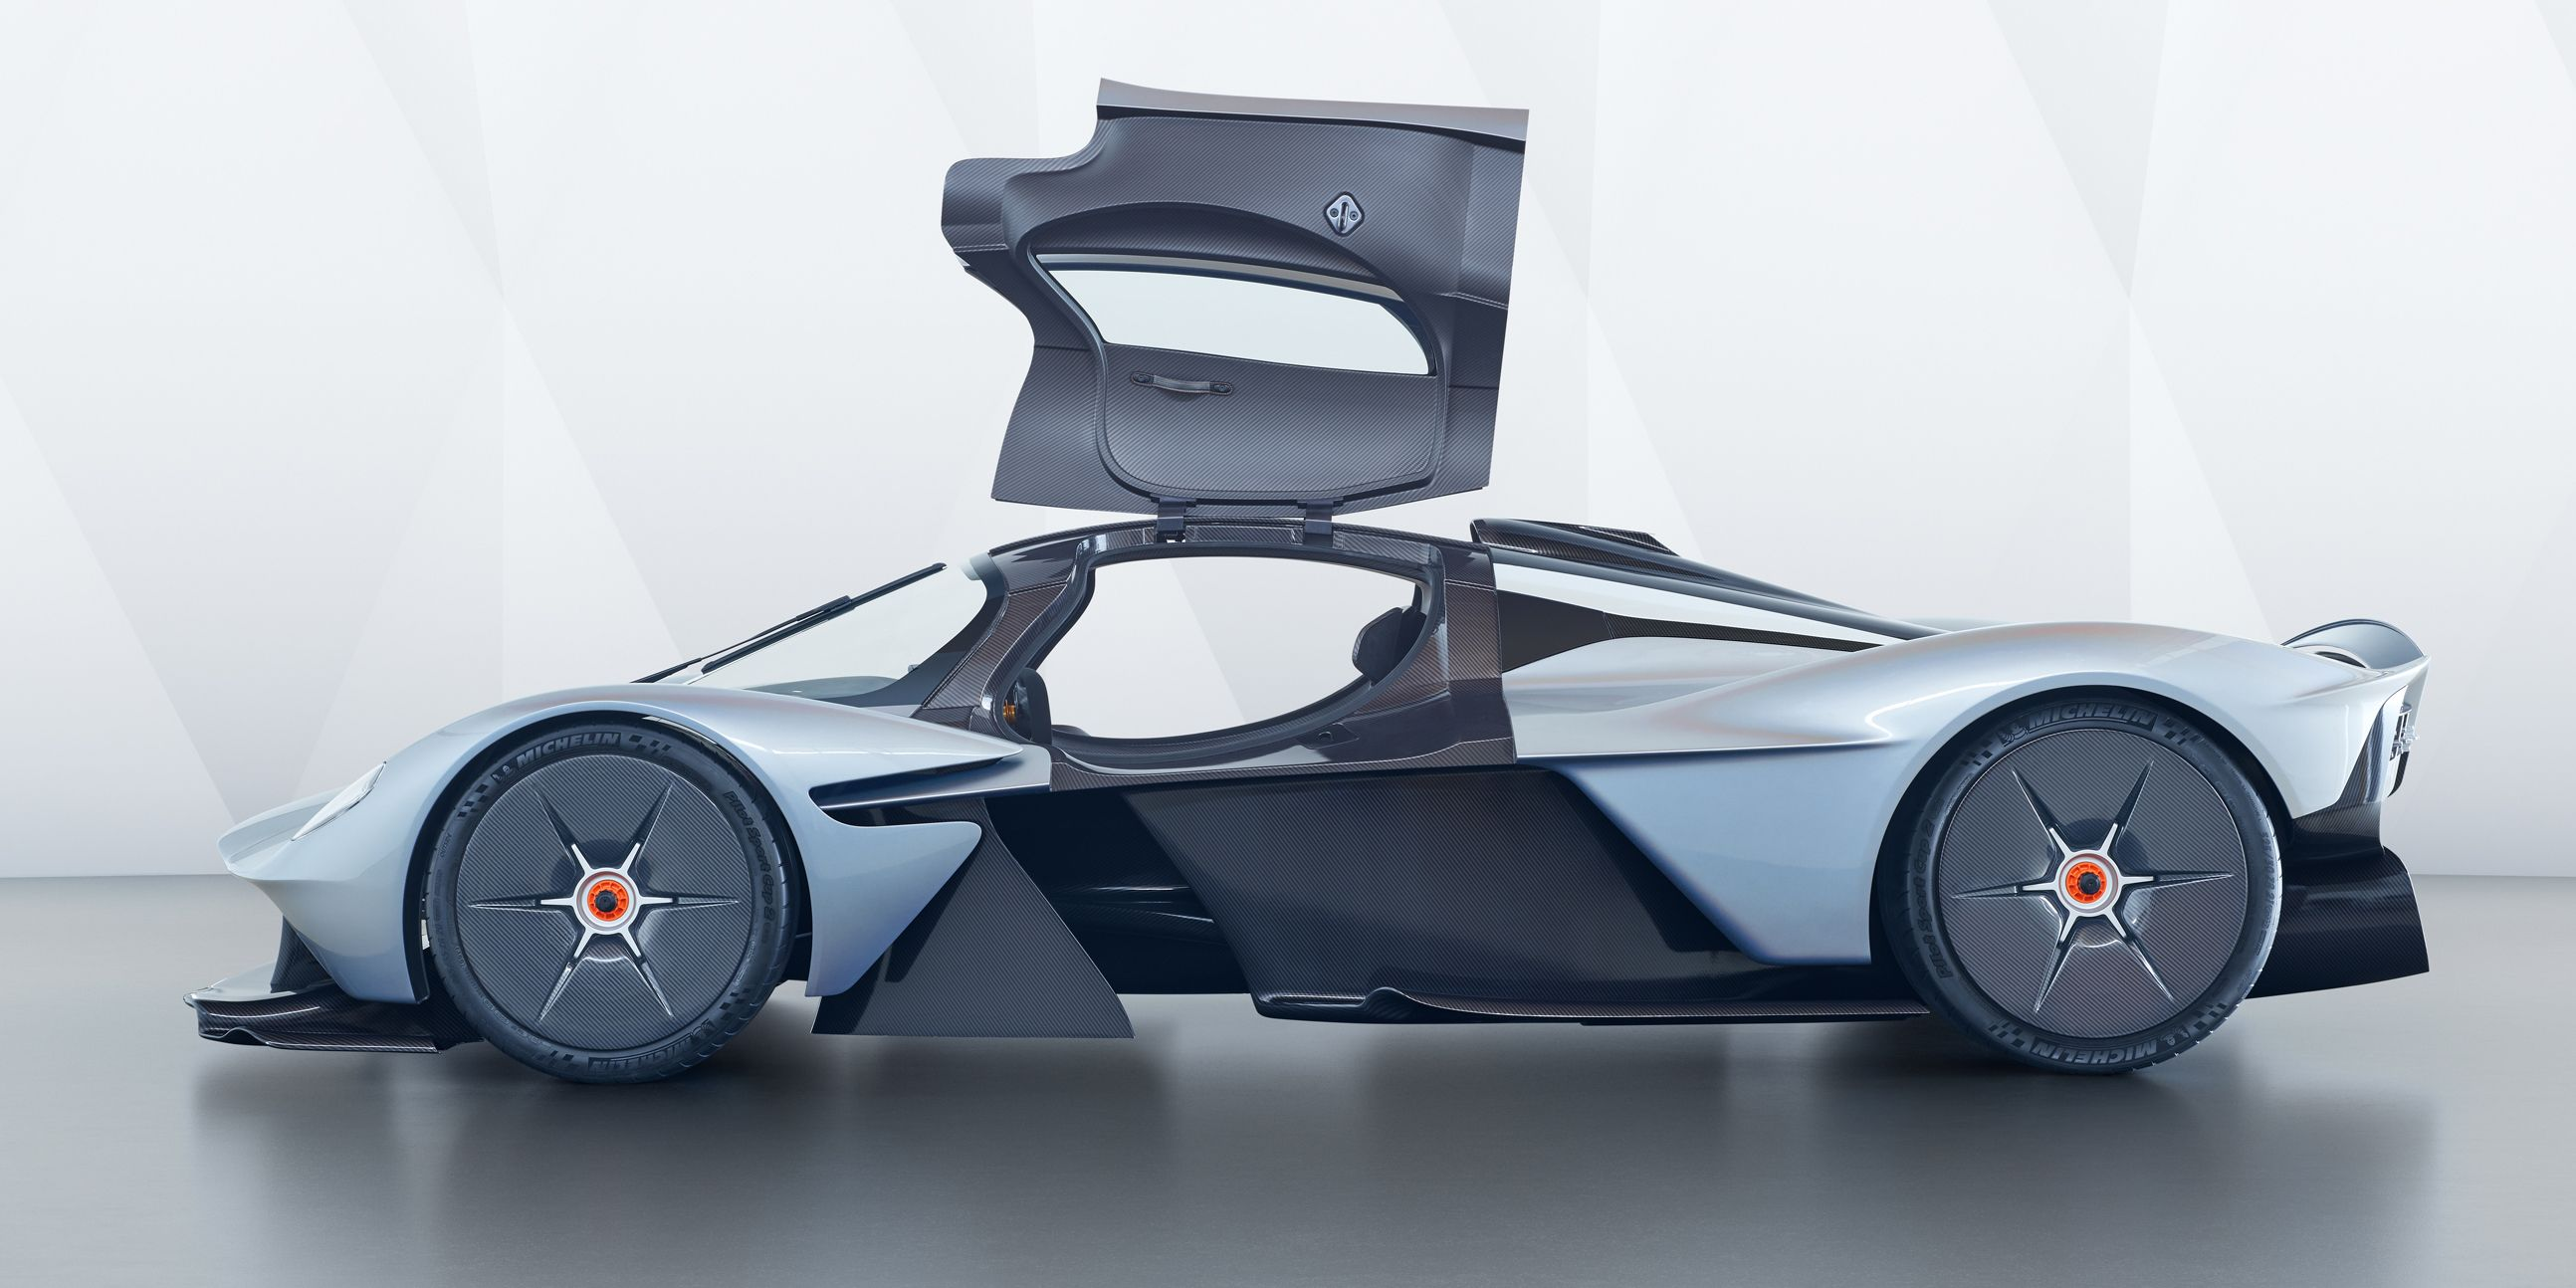 Aston Martin Says The 250 Mph Valkyrie Amr Pro Will Be As Fast As A